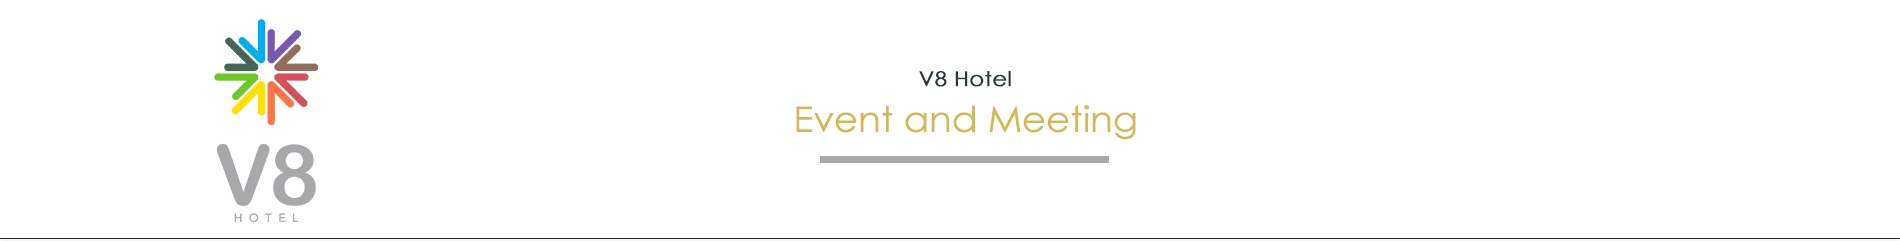 Events & Meeting page design_V8 Hoteltb